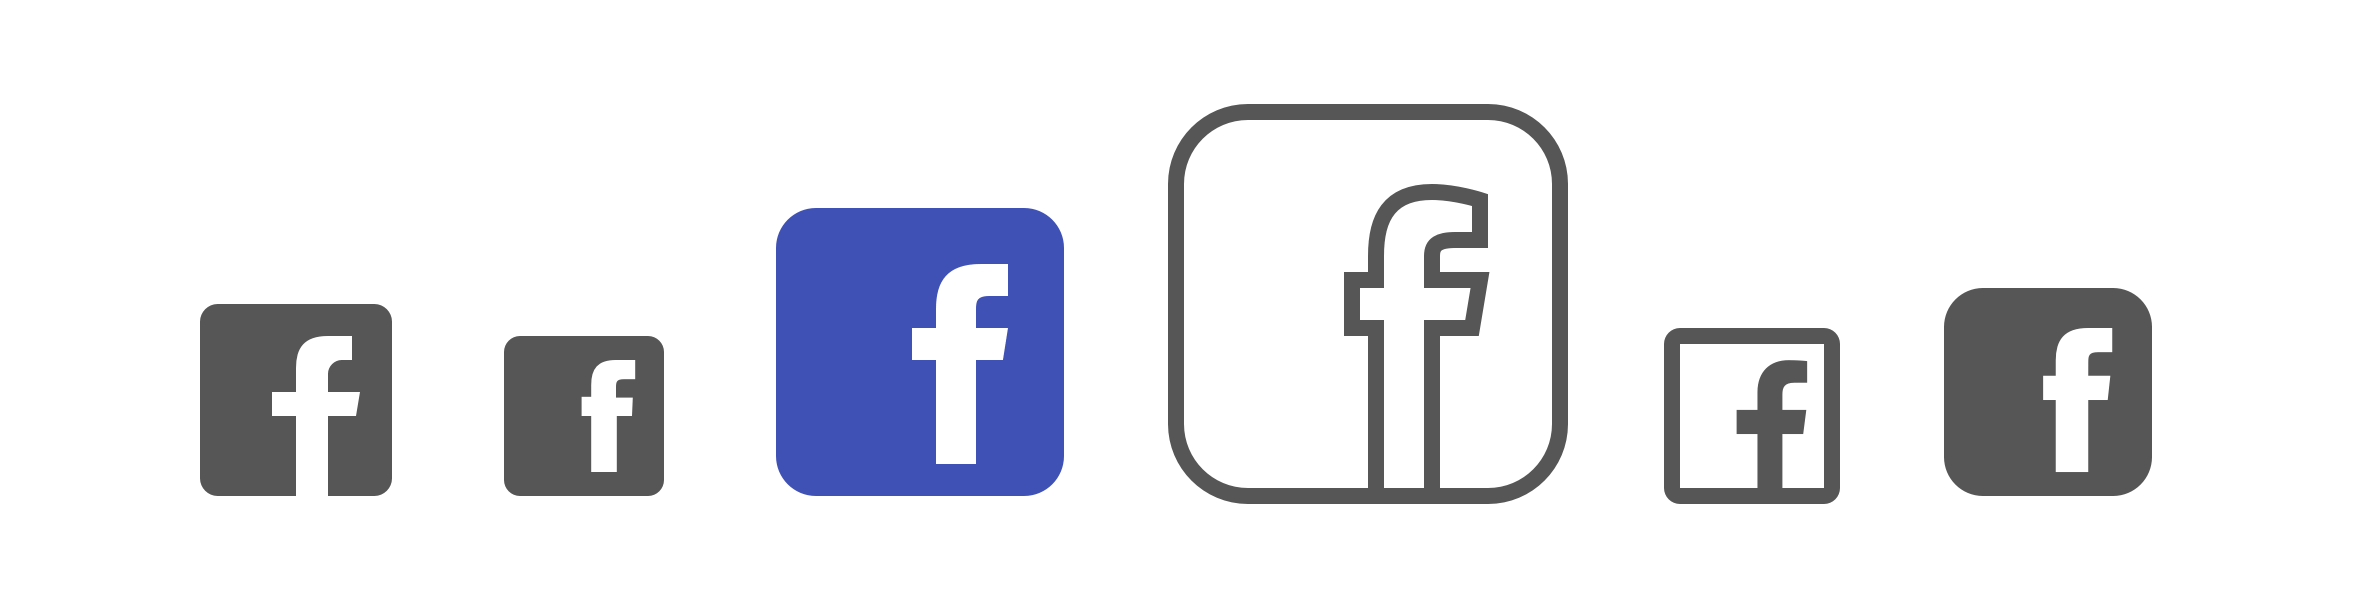 Facebook Icon Vector Free Download At Getdrawings Com Free